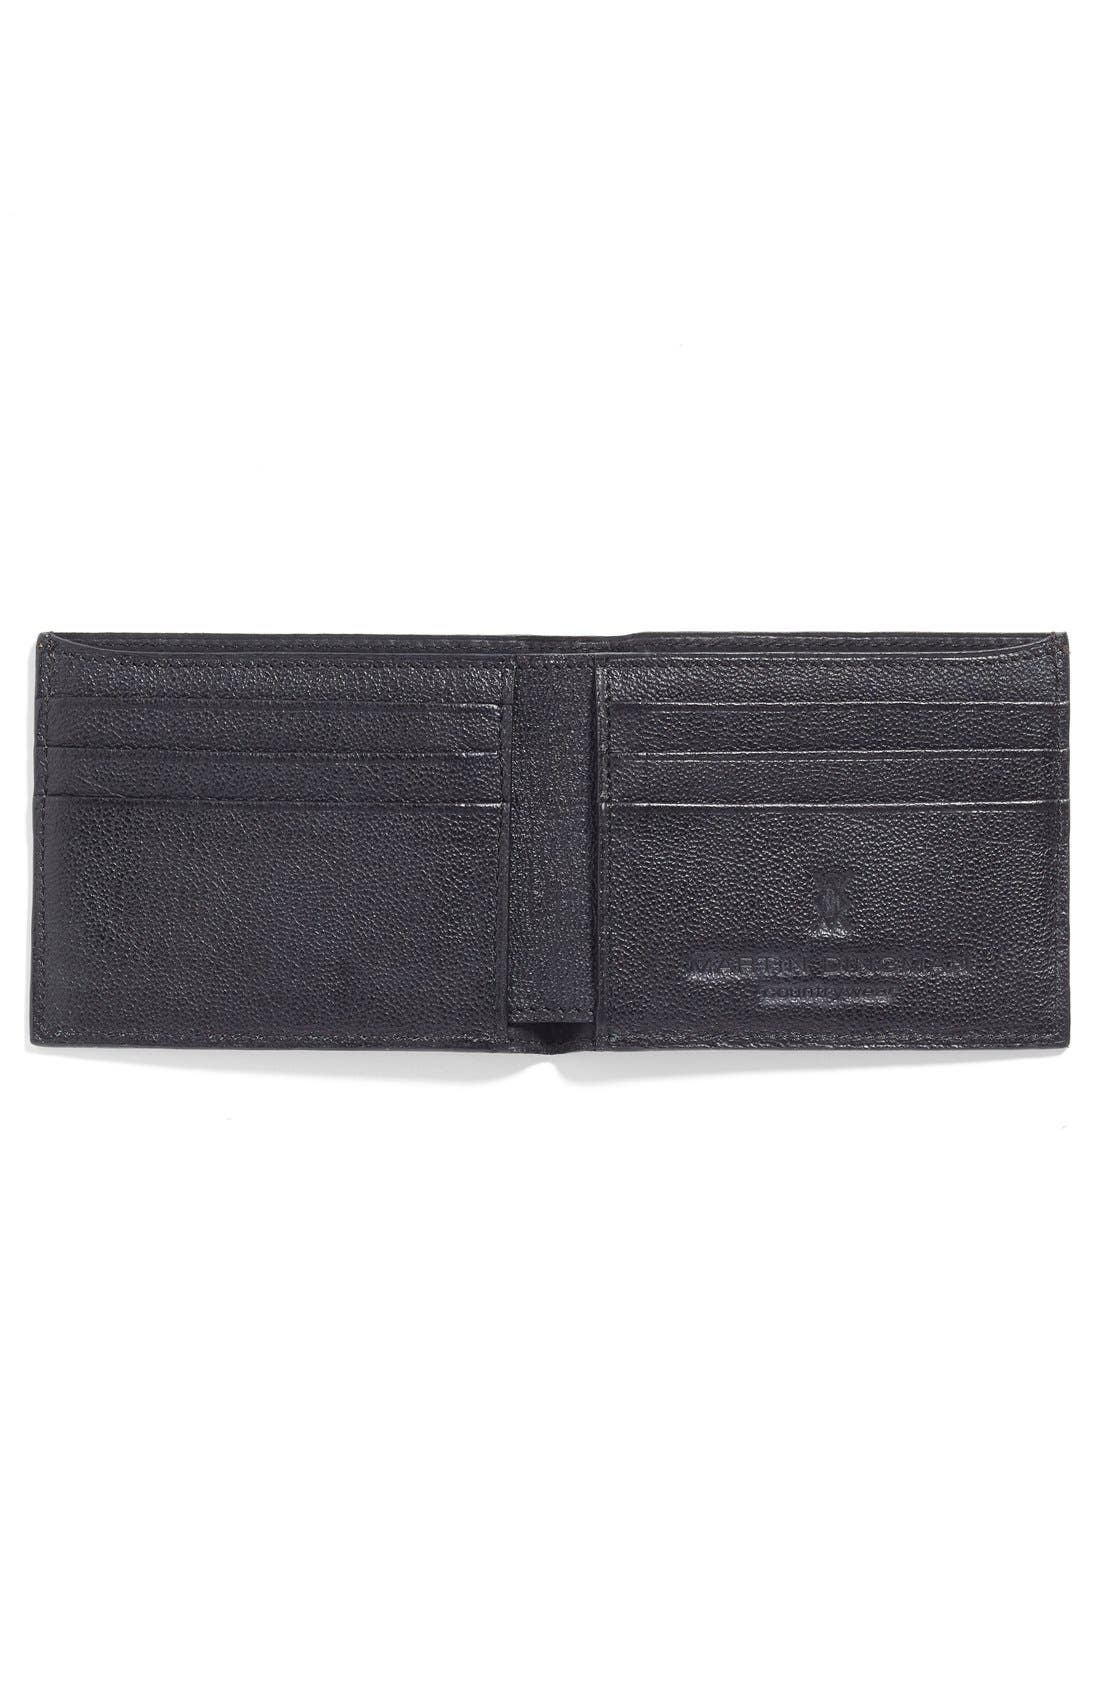 Leather Wallet,                             Alternate thumbnail 3, color,